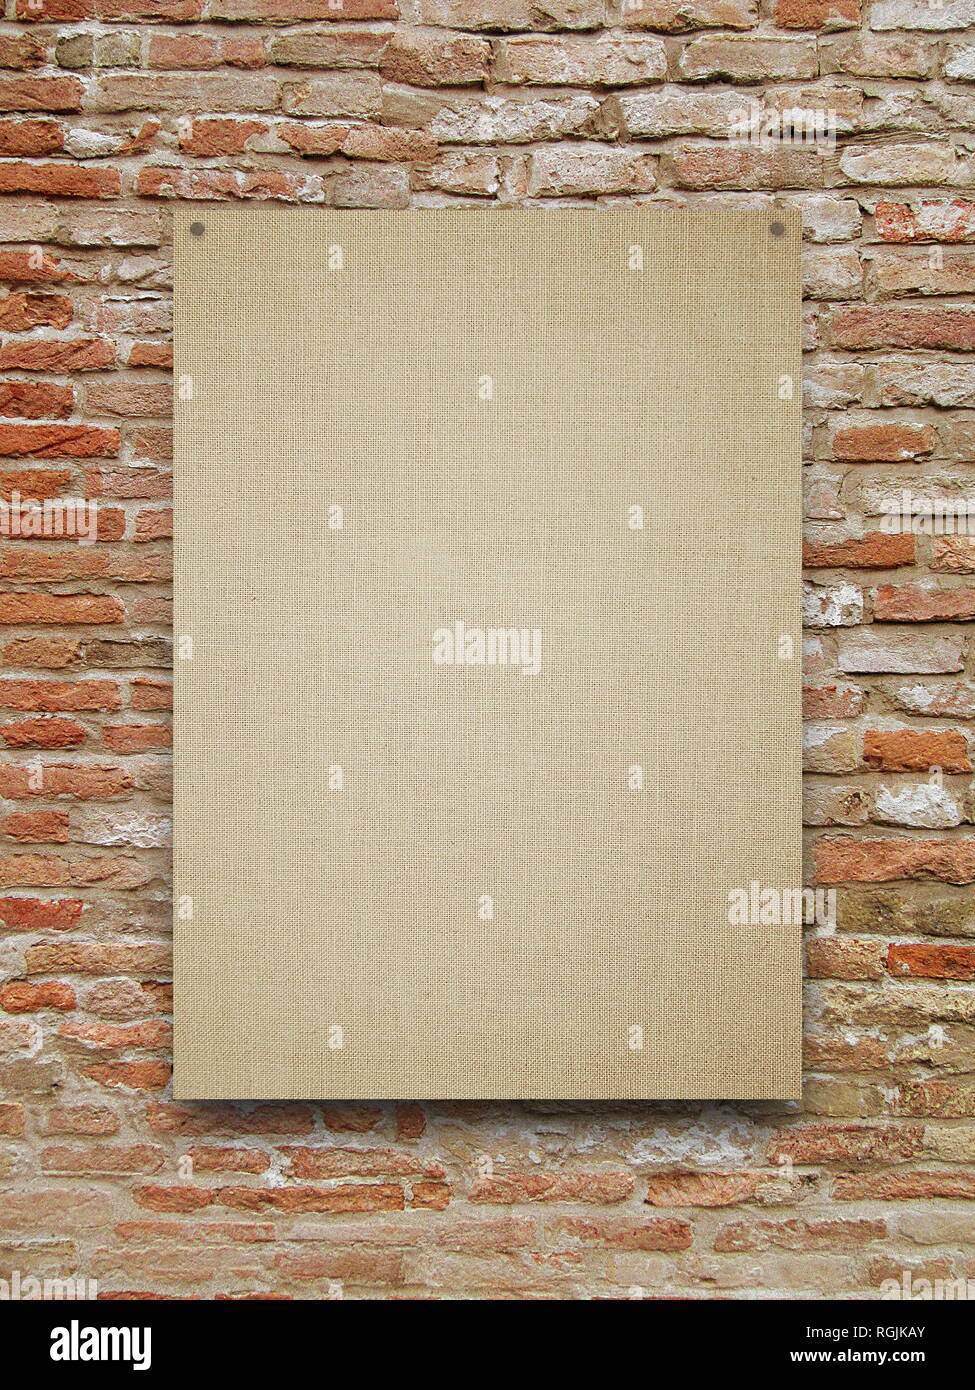 Blank canvas frame on orange weathered brick wall background - Stock Image